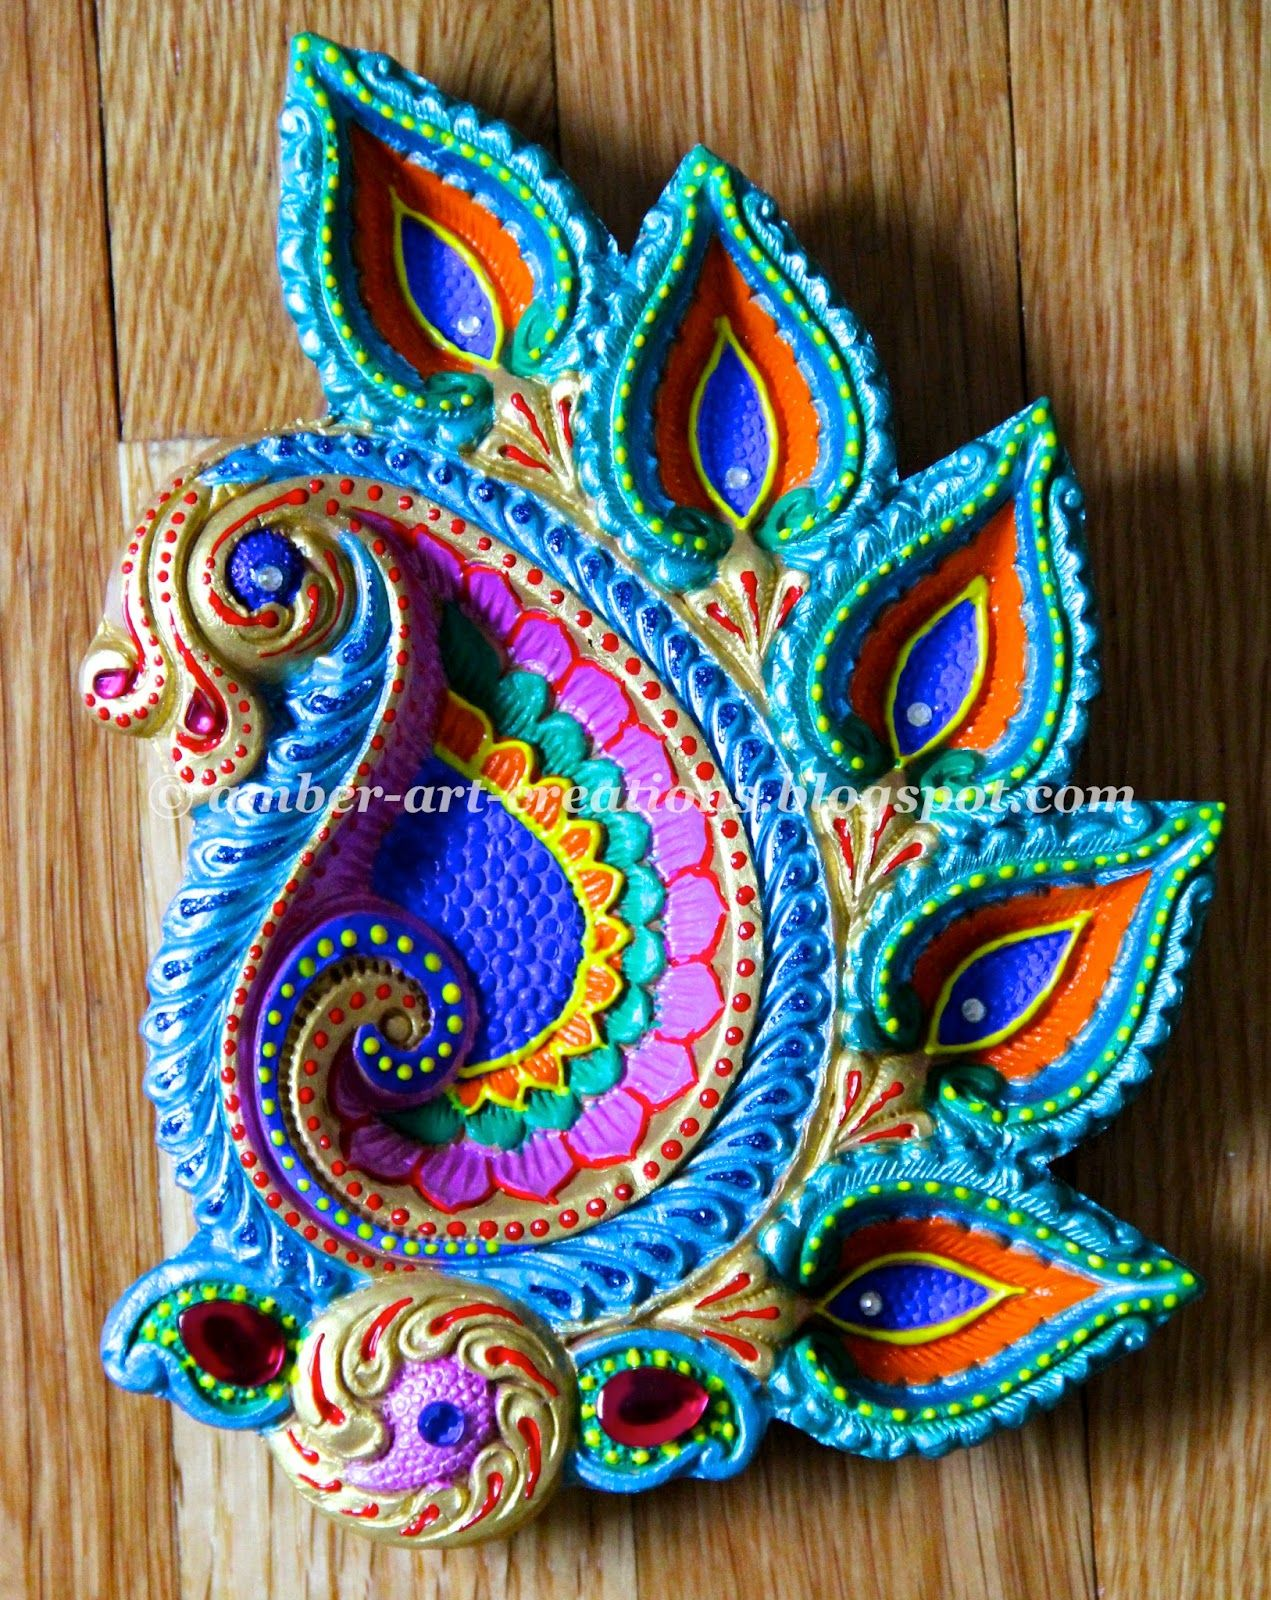 amber art creations arts crafts and diy projects diy hand painted